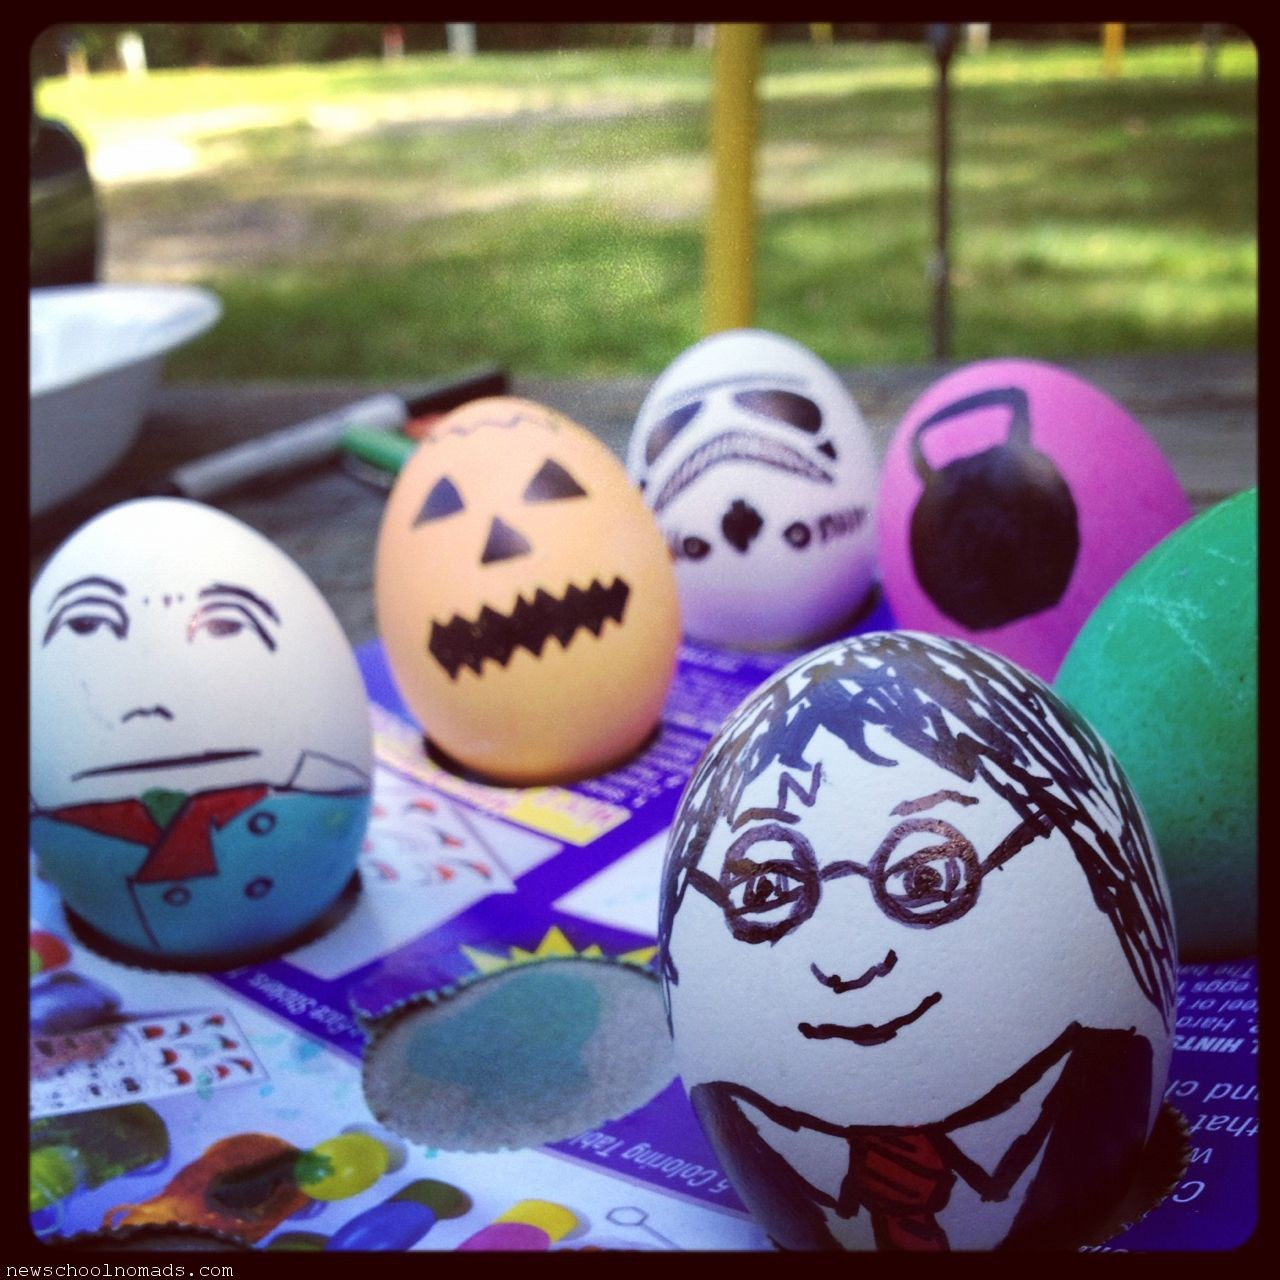 Harry Potter Book Easter Eggs : Harry potter easter egg and humpty dumpty newschool nomads